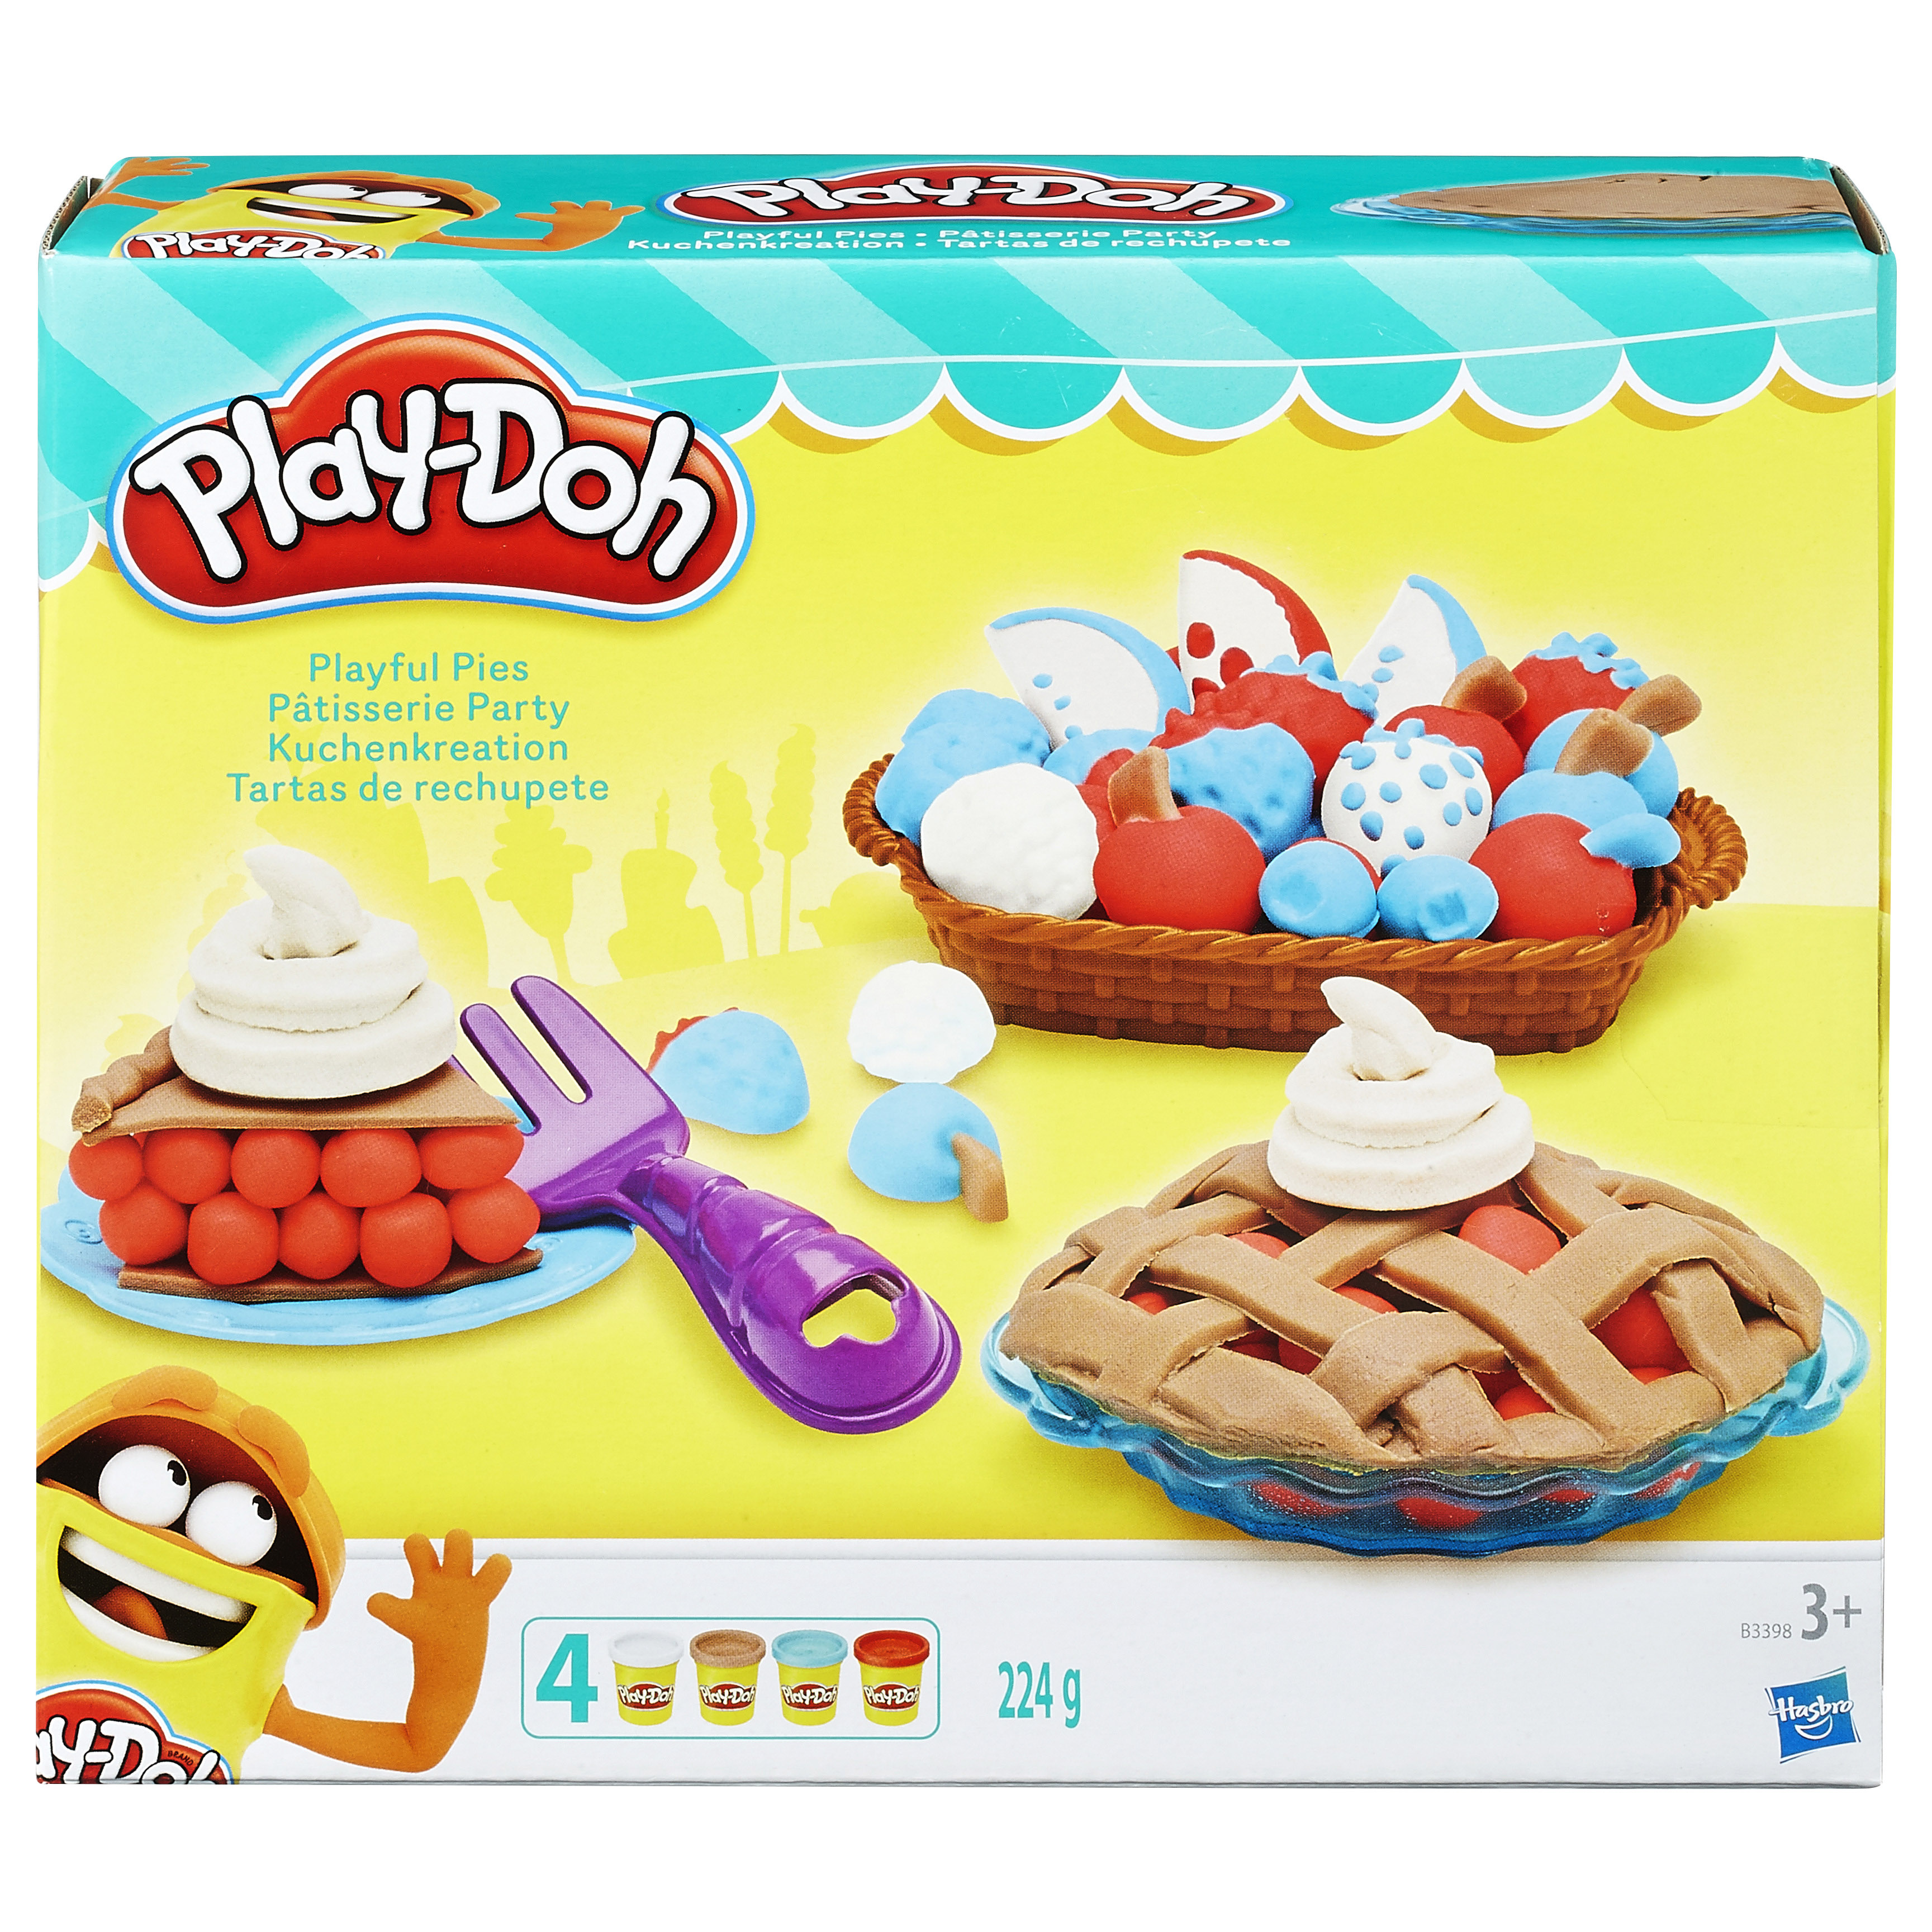 Play-Doh Playful Pies Play Set NEW